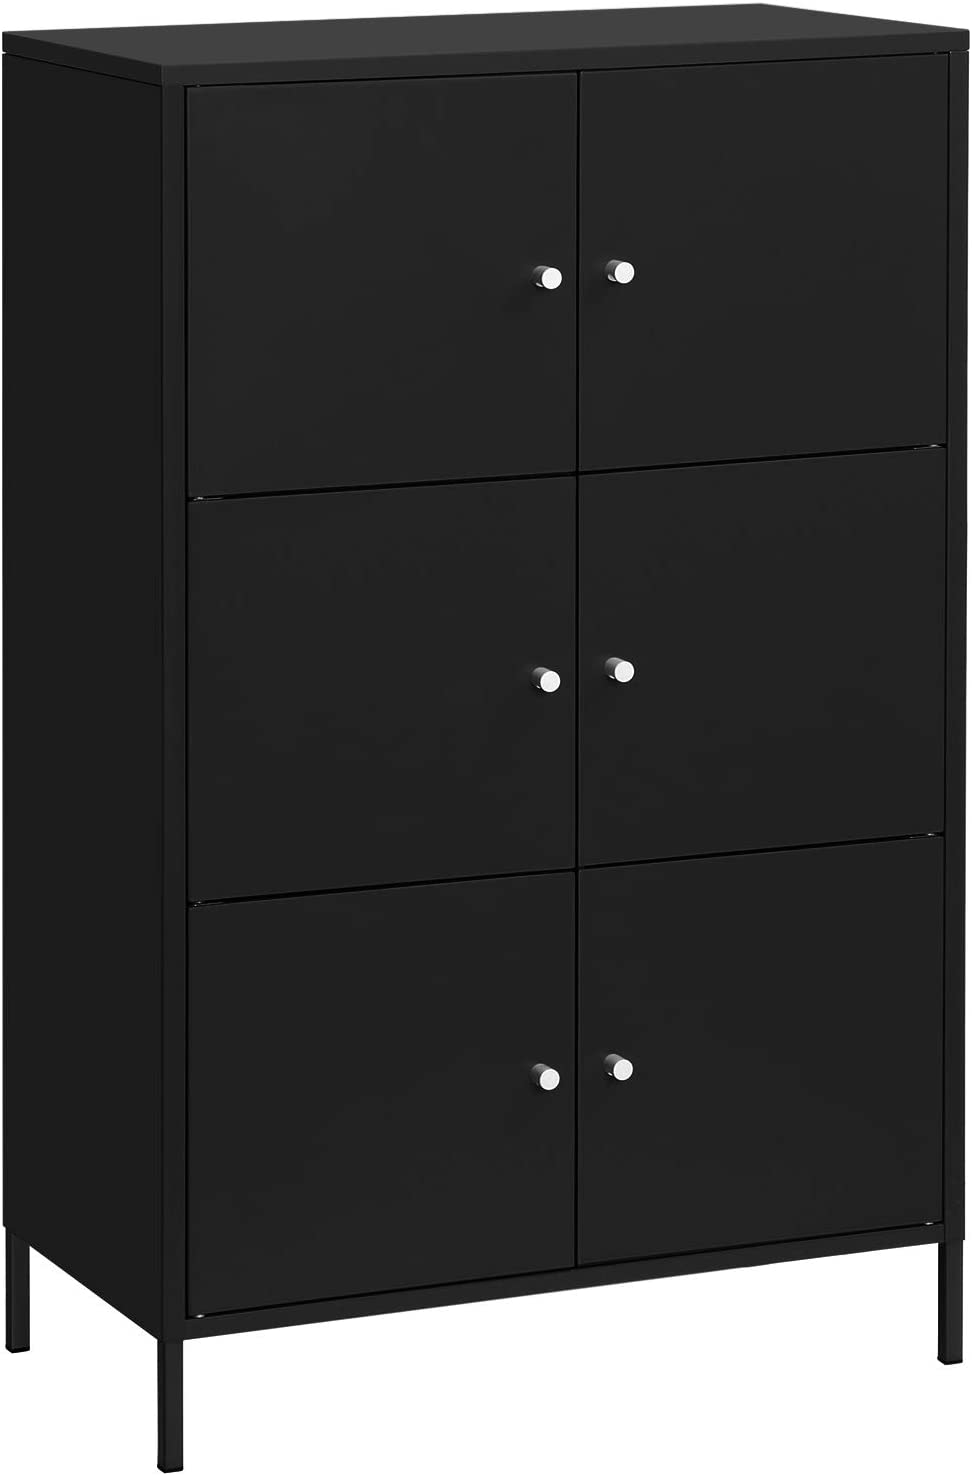 SONGMICS Storage Cabinet, 3-Tier Metal Office Cabinet, Multipurpose Storage Organiser Stand with 6 Doors, 27.5 x 14.2 x 44.2 Inches, Max. Load Capacity 33 lb per Shelf, Black UOMC006B01